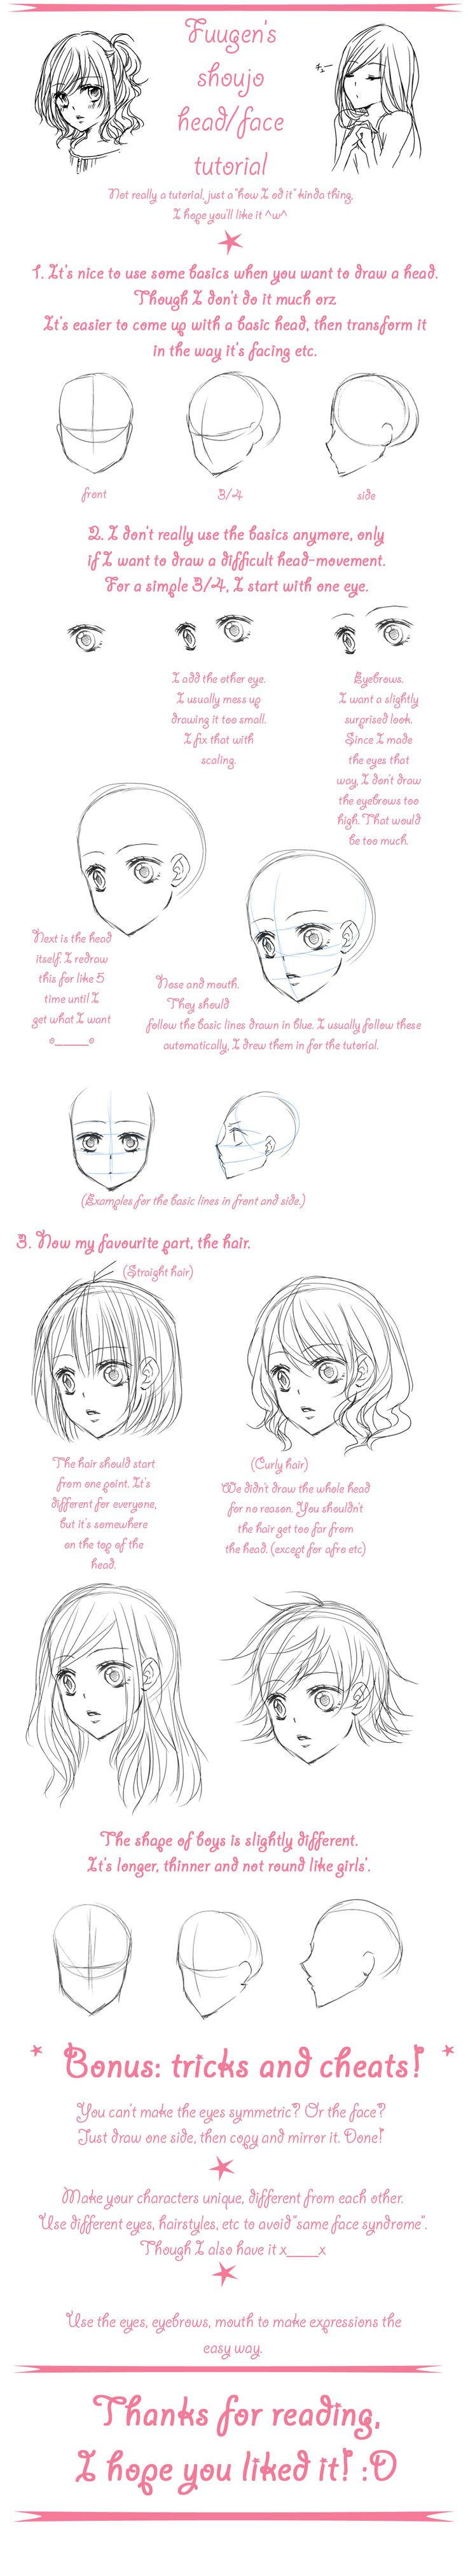 shoujo face/head walkthrough by *Fuugen